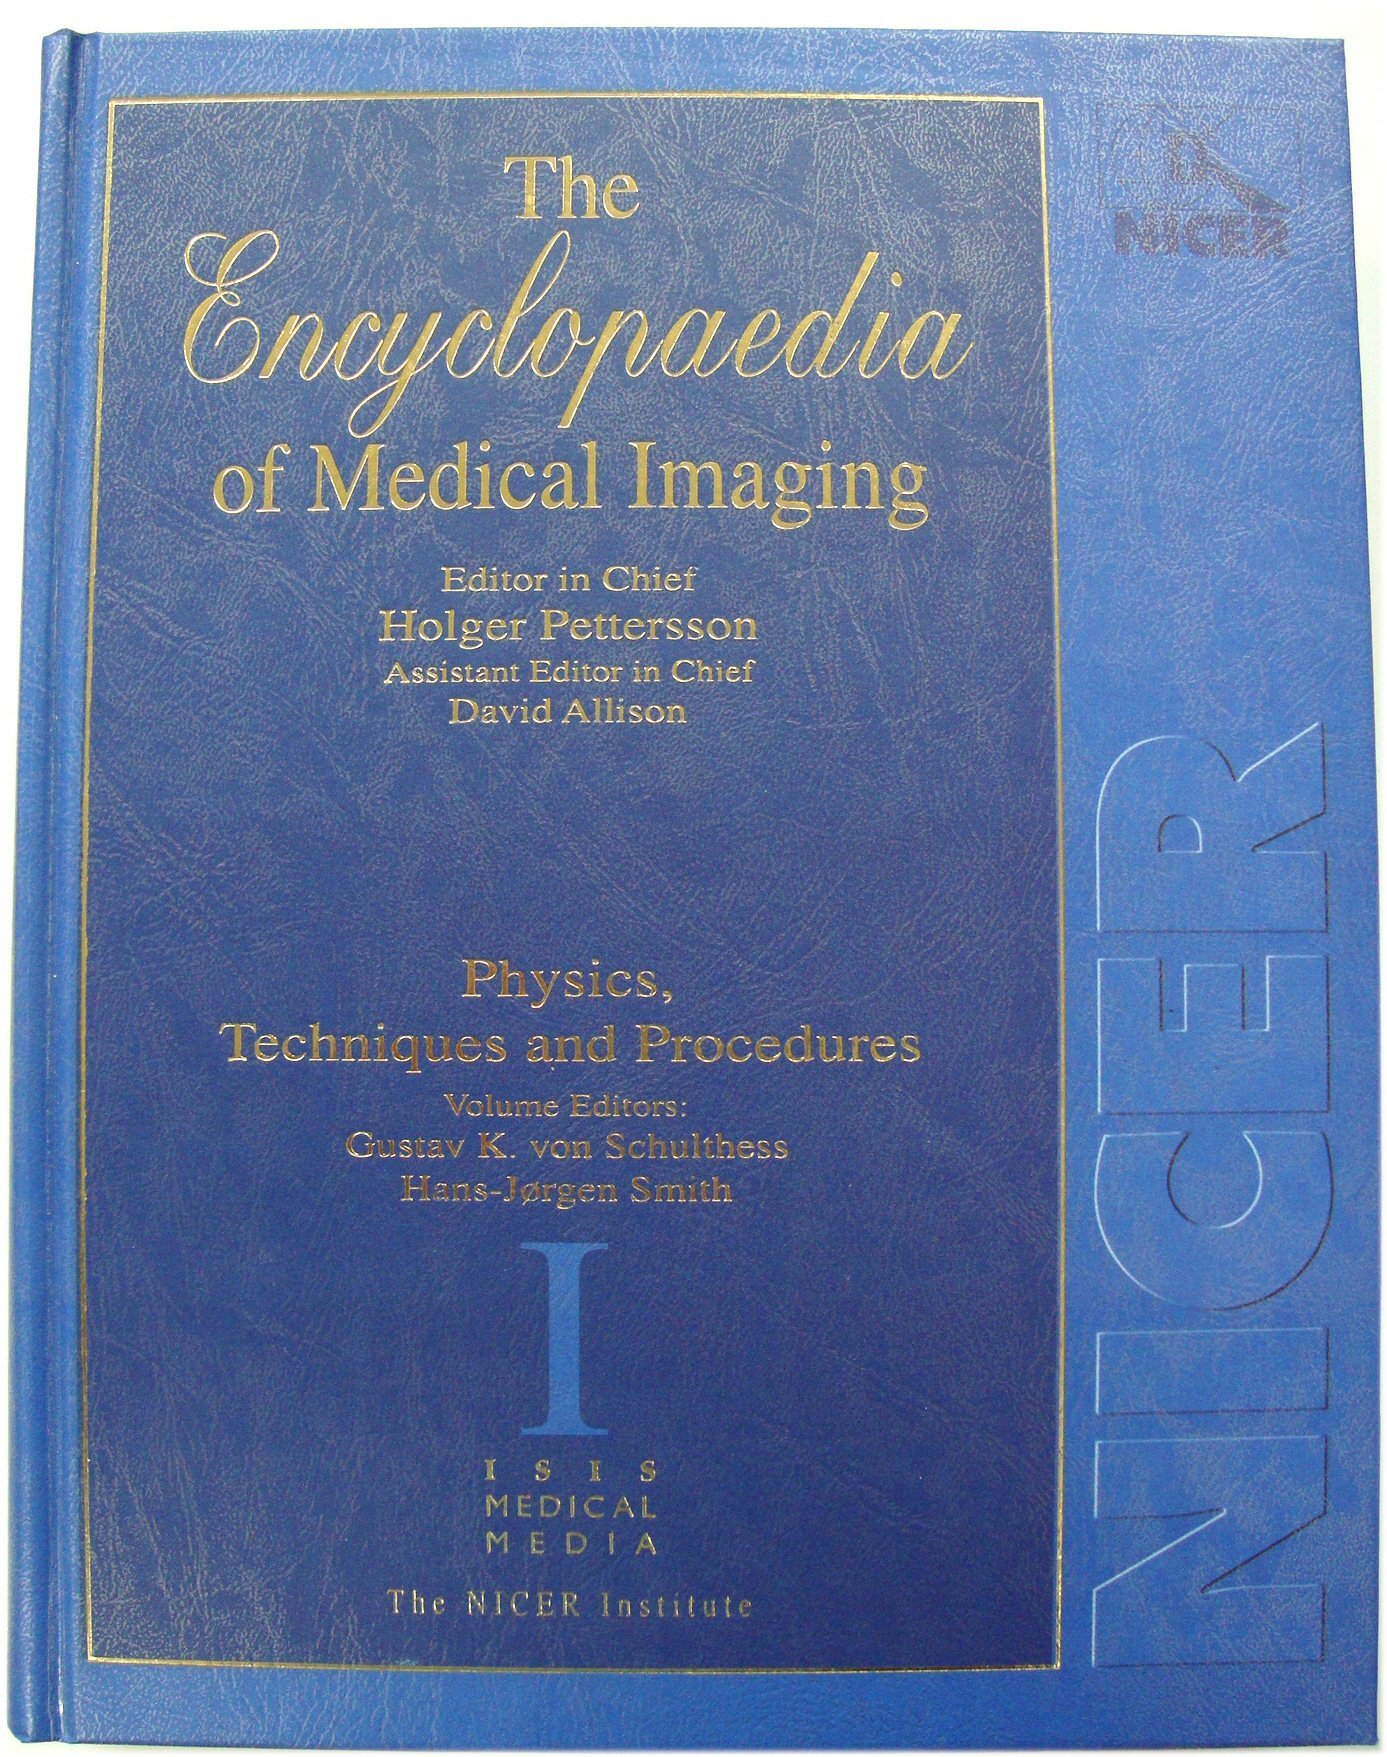 Image for The Encyclopaedia of Medical Imaging: Physics, Techniques and Procedures - Volume I